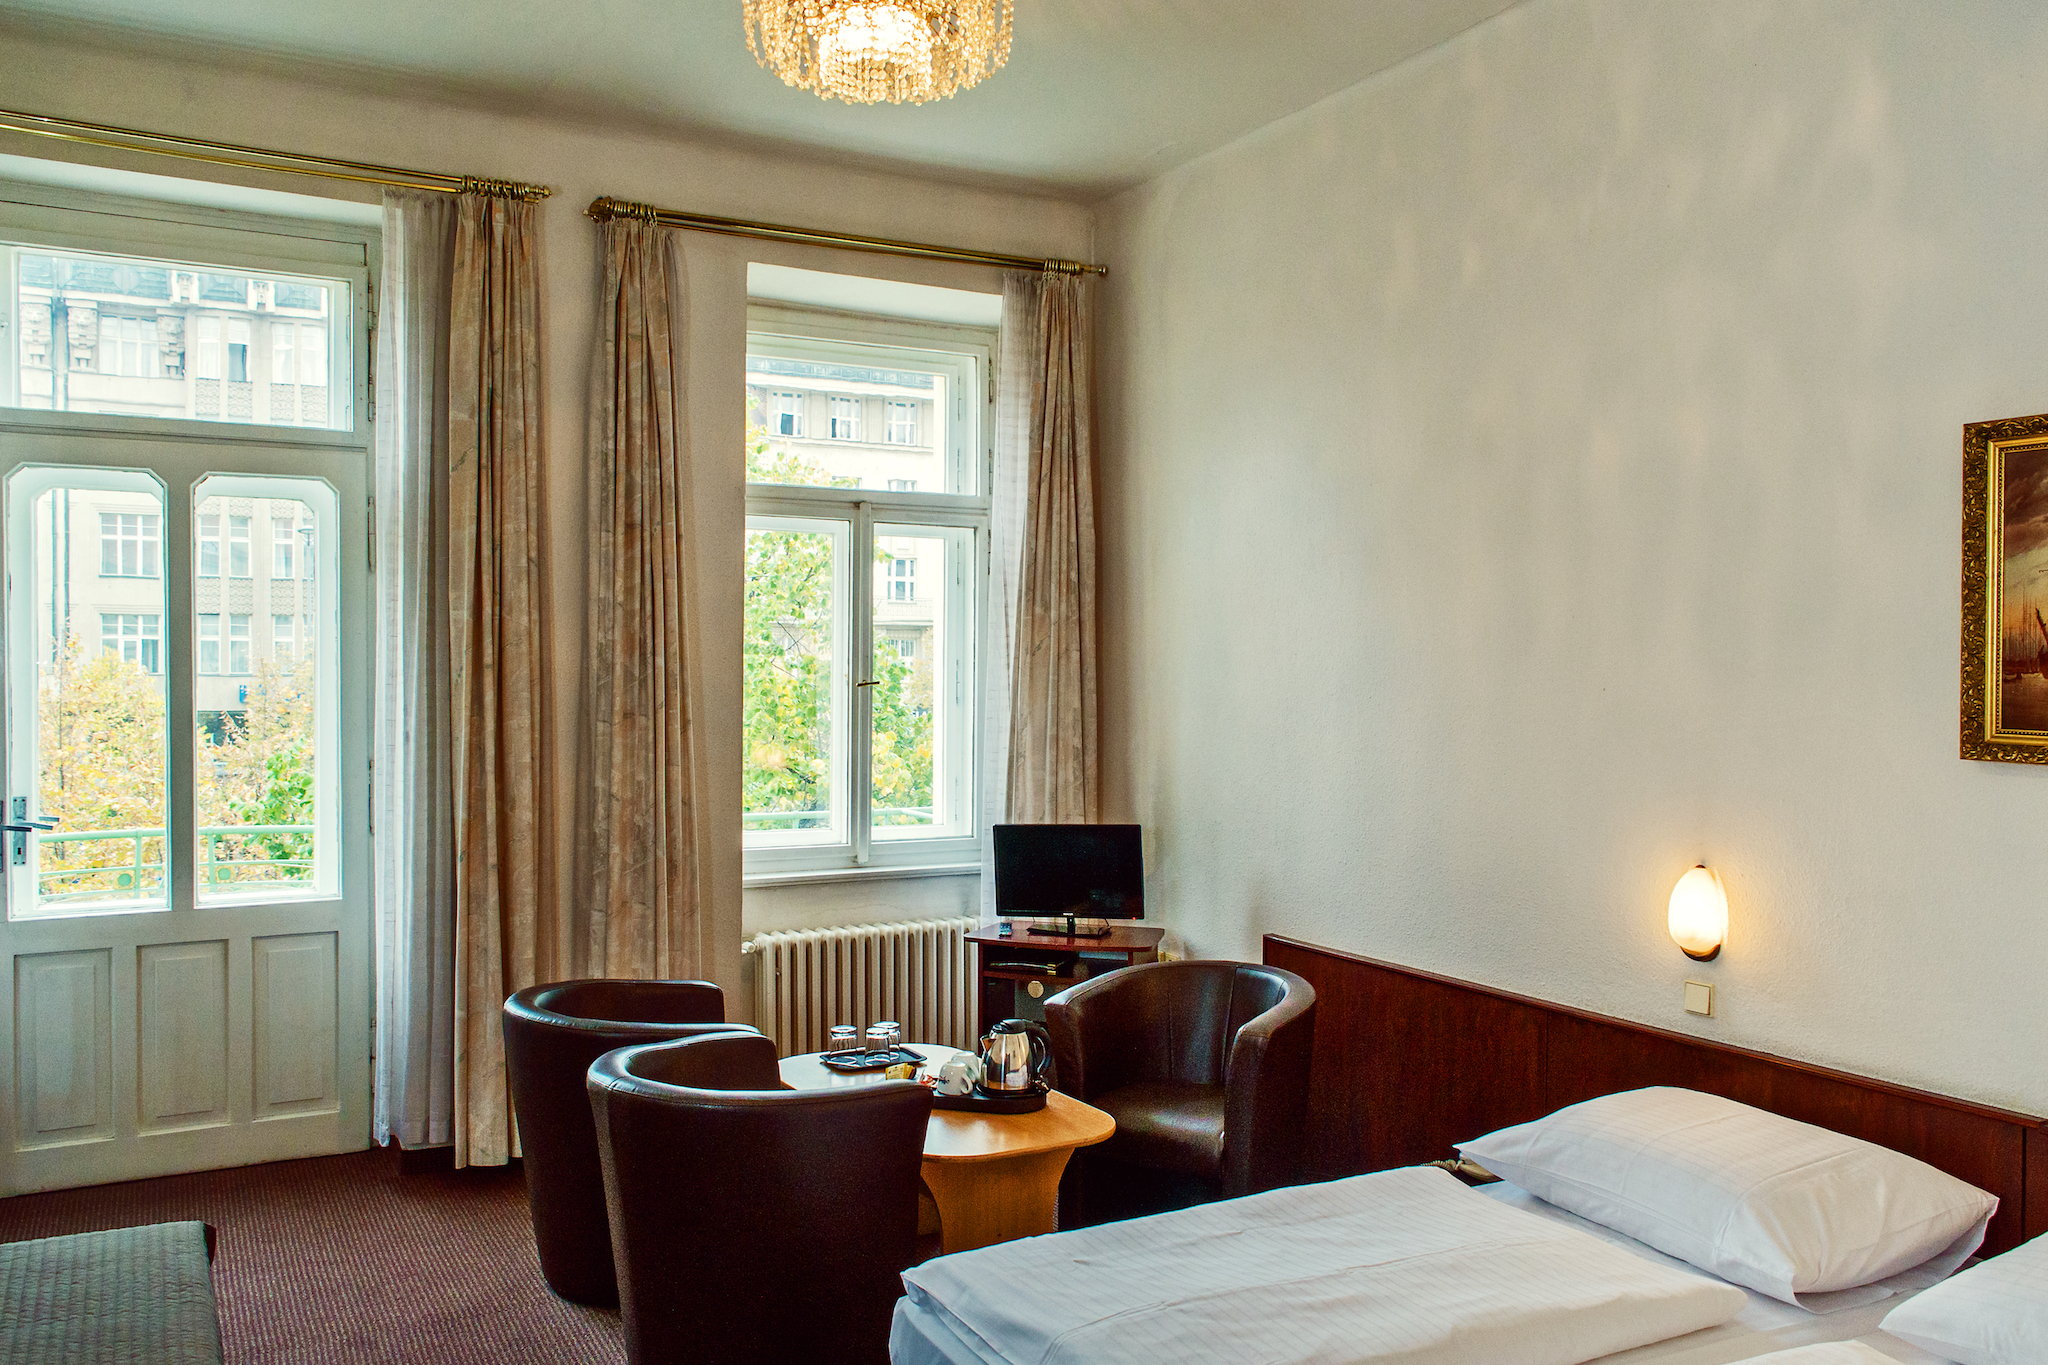 Hotel Meran | Prague 1 | Photos 23